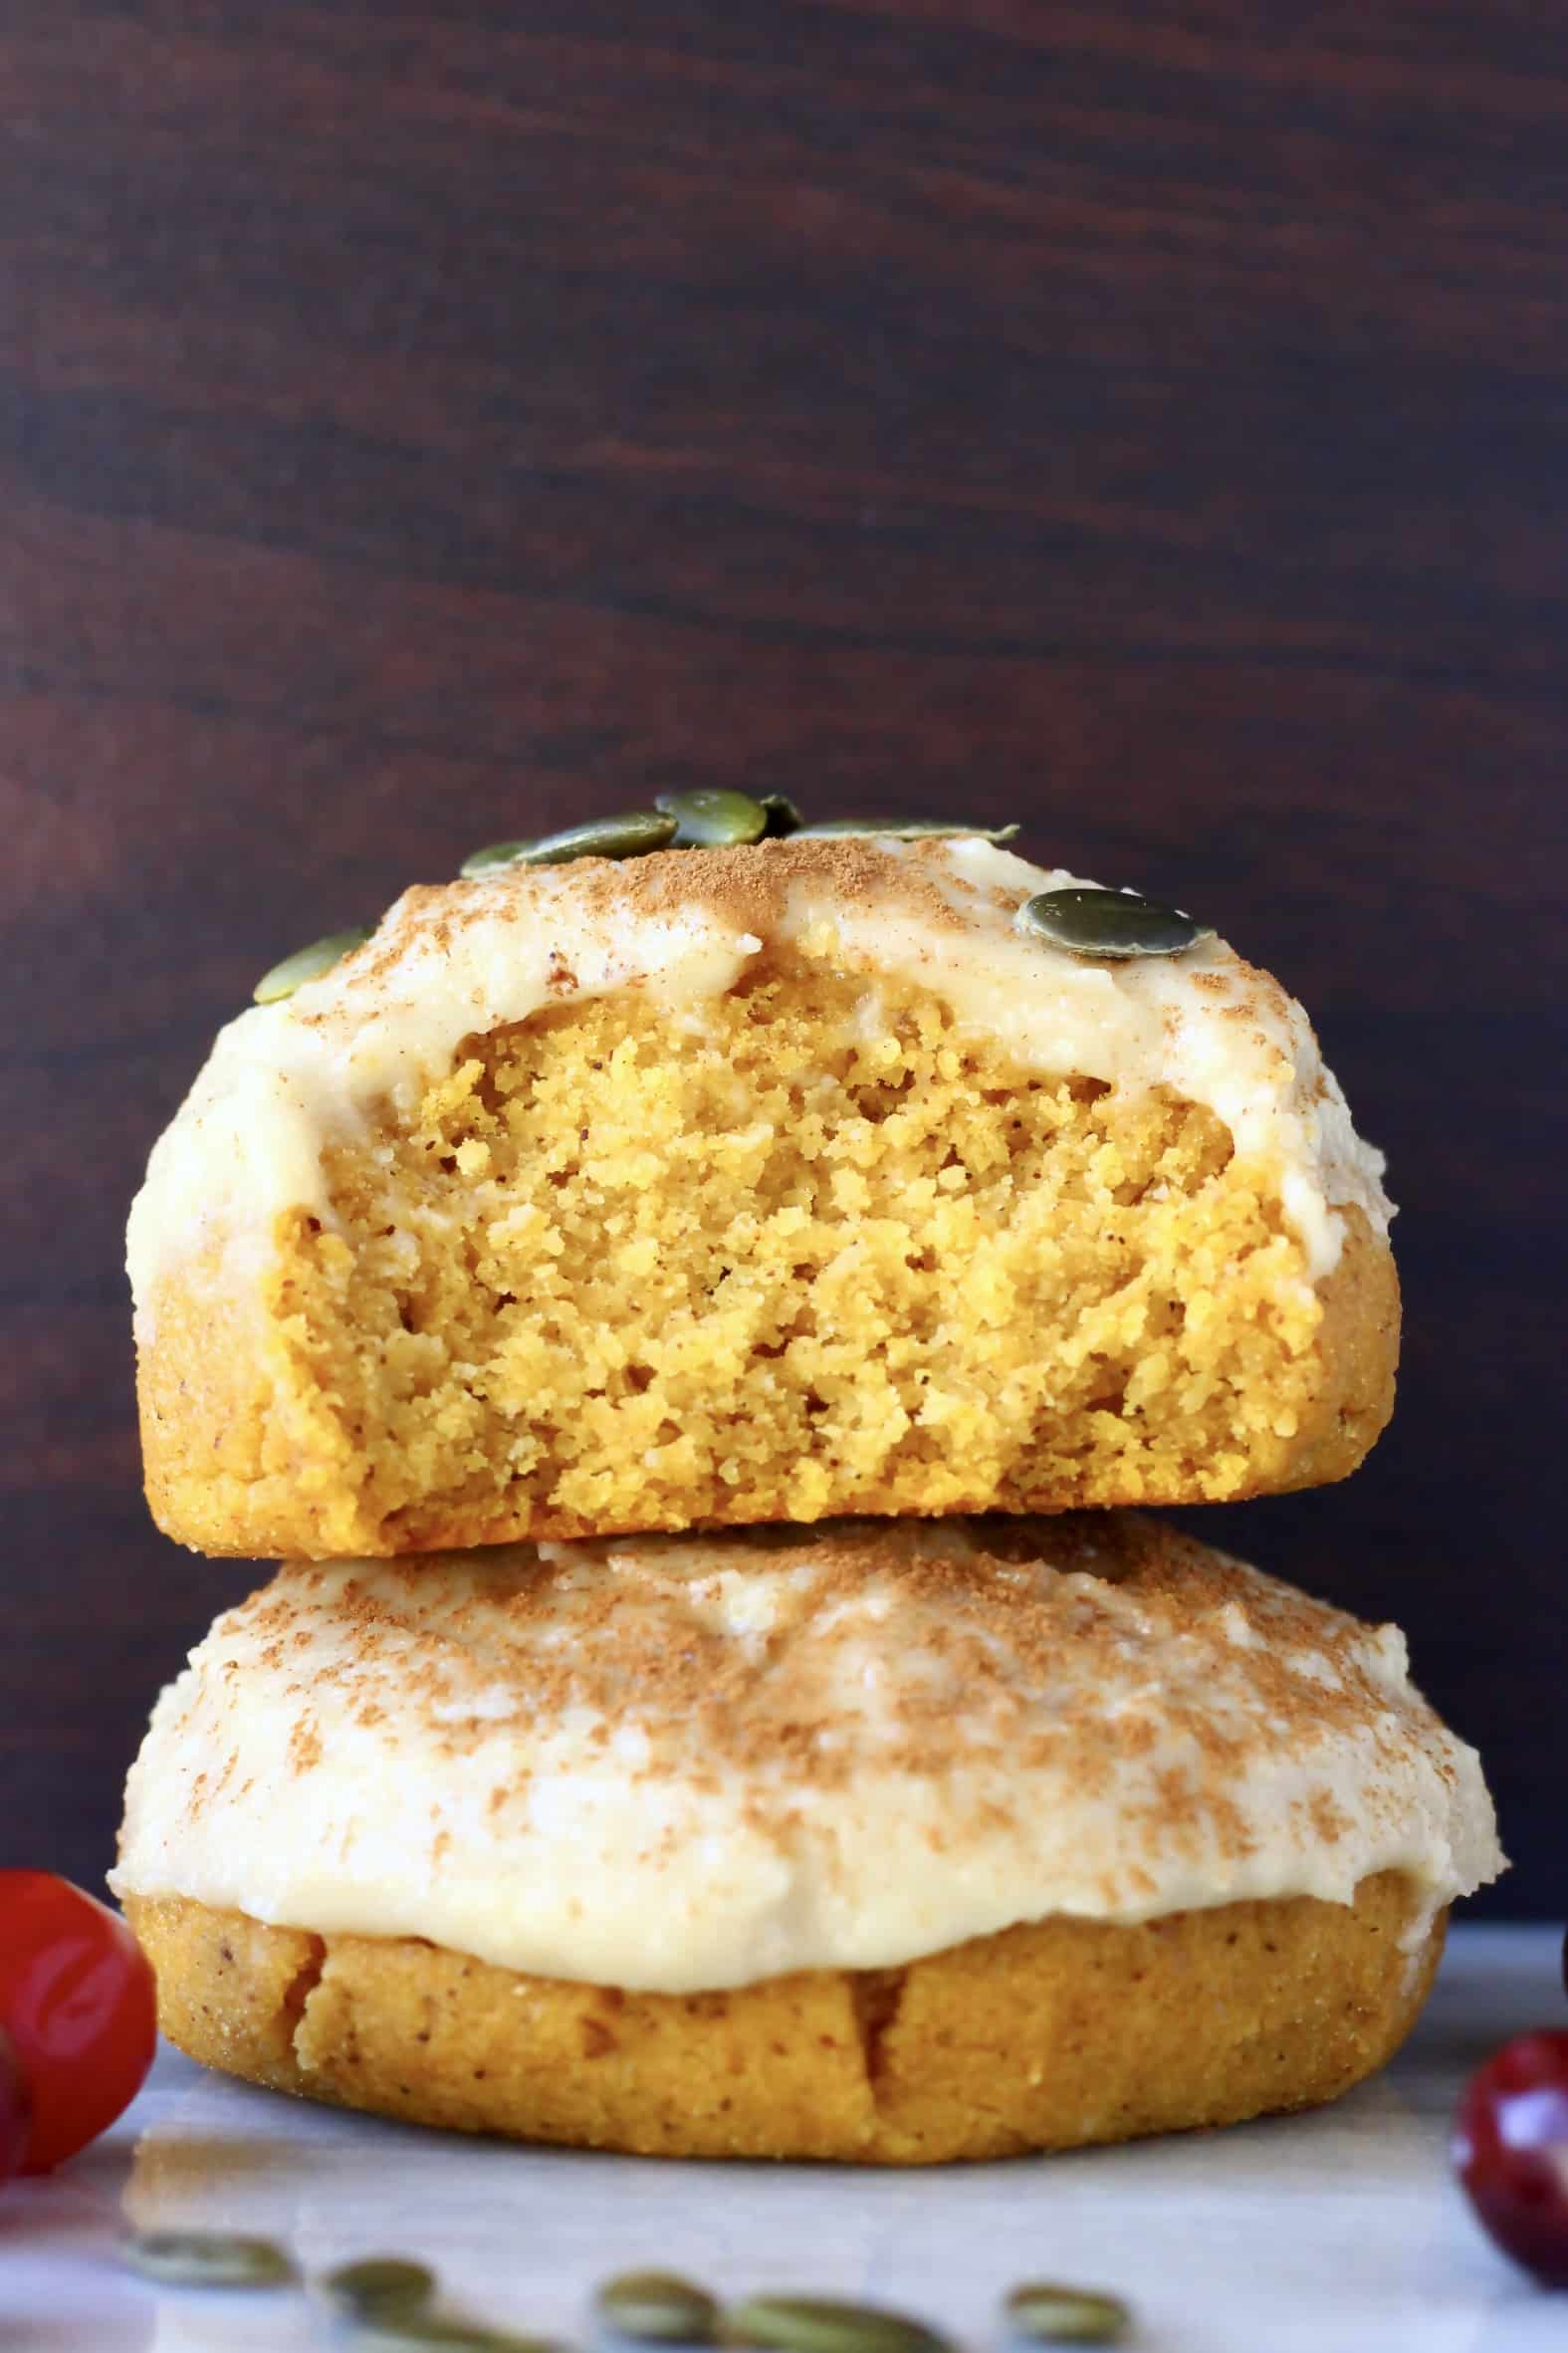 Two gluten-free vegan pumpkin cookies with frosting stacked on top of each other, one cut in half